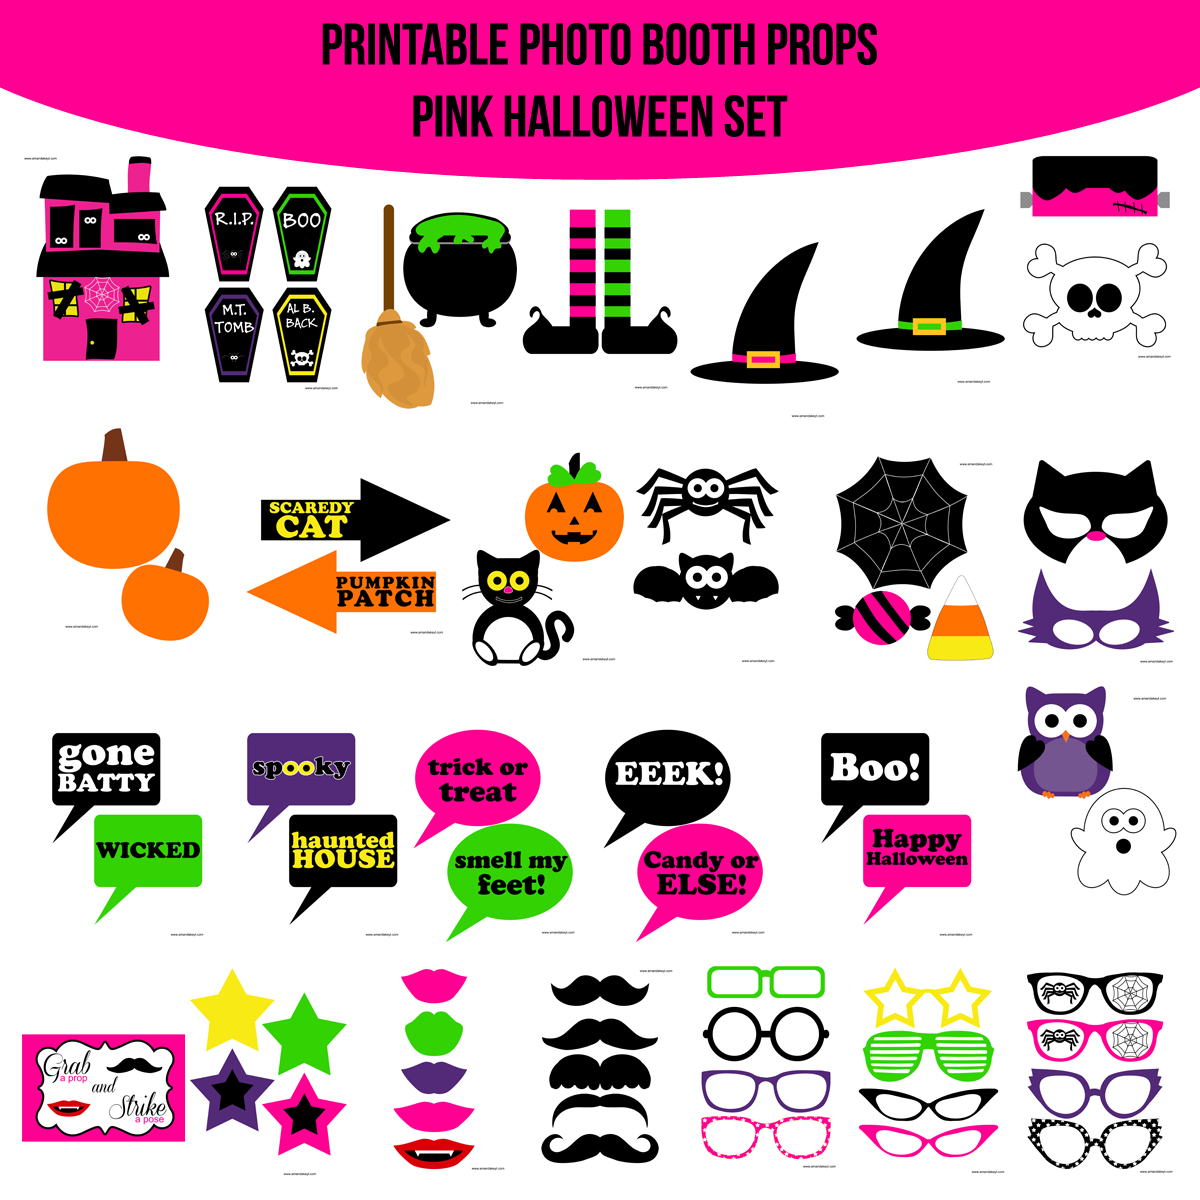 See the Set - To View The Whole Halloween Pink Printable Photo Booth Prop Set Click Here